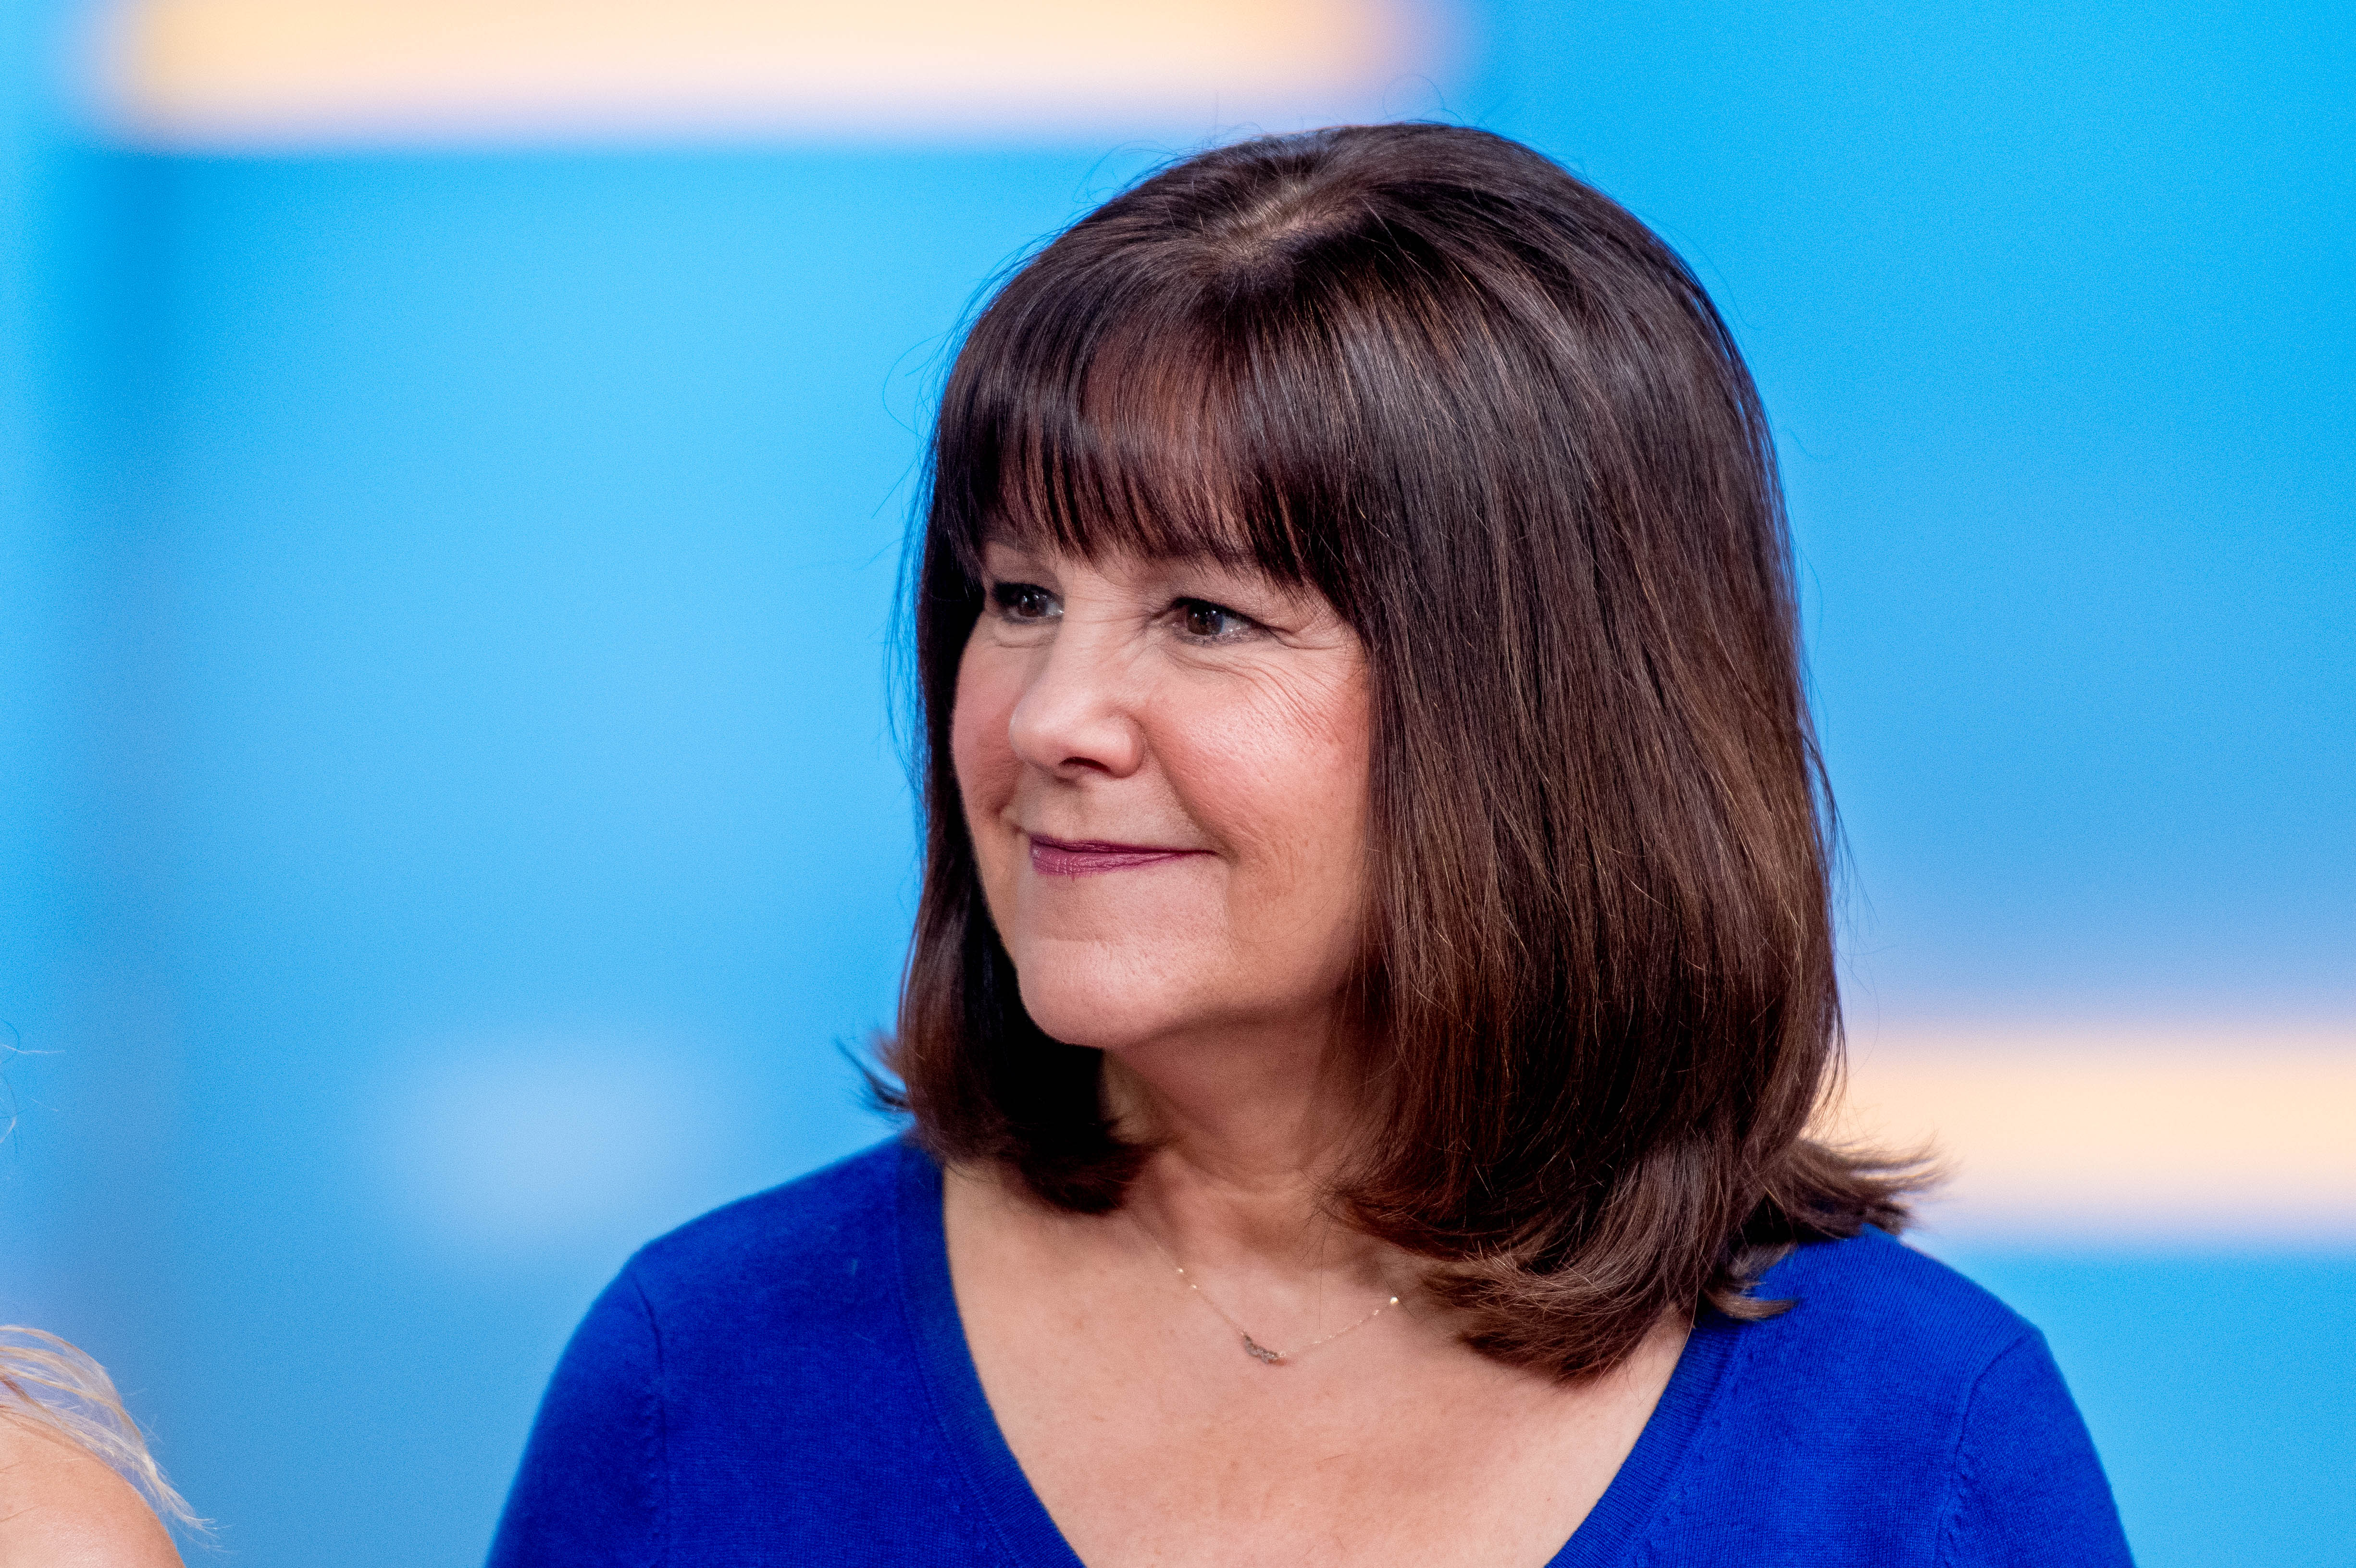 Second Lady Karen Pence visits Fox & Friends to discuss  Marlon Bundo's a day in the life of The Vice President  at Fox News Studios on March 19, 2018 in New York City.